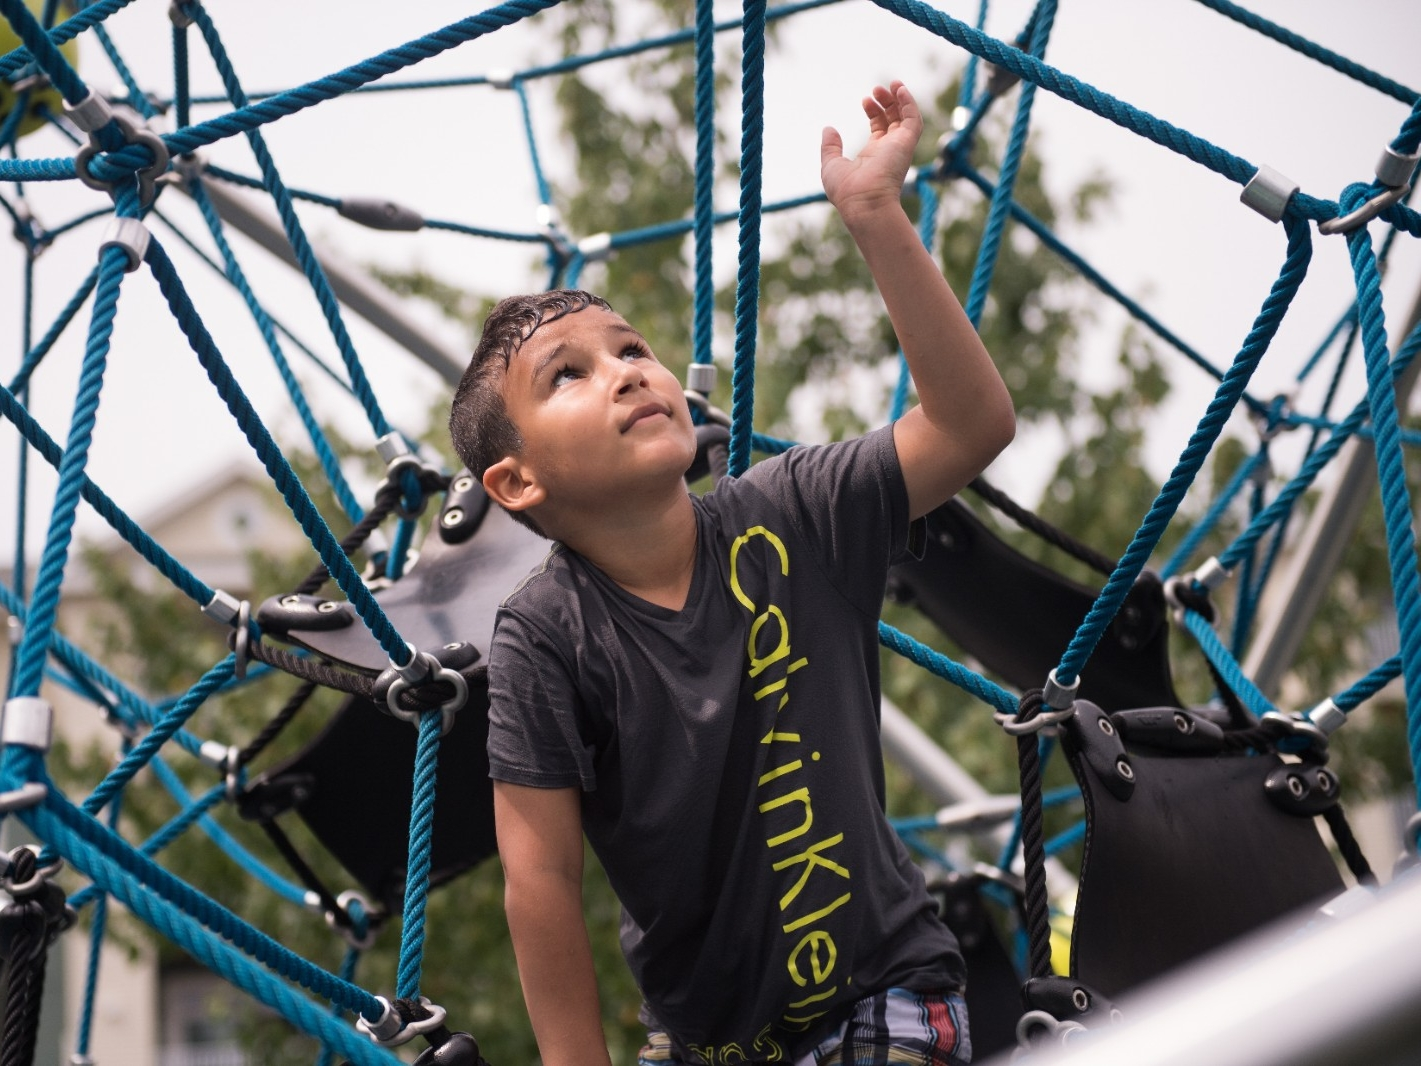 A boy plays on a jungle gym.